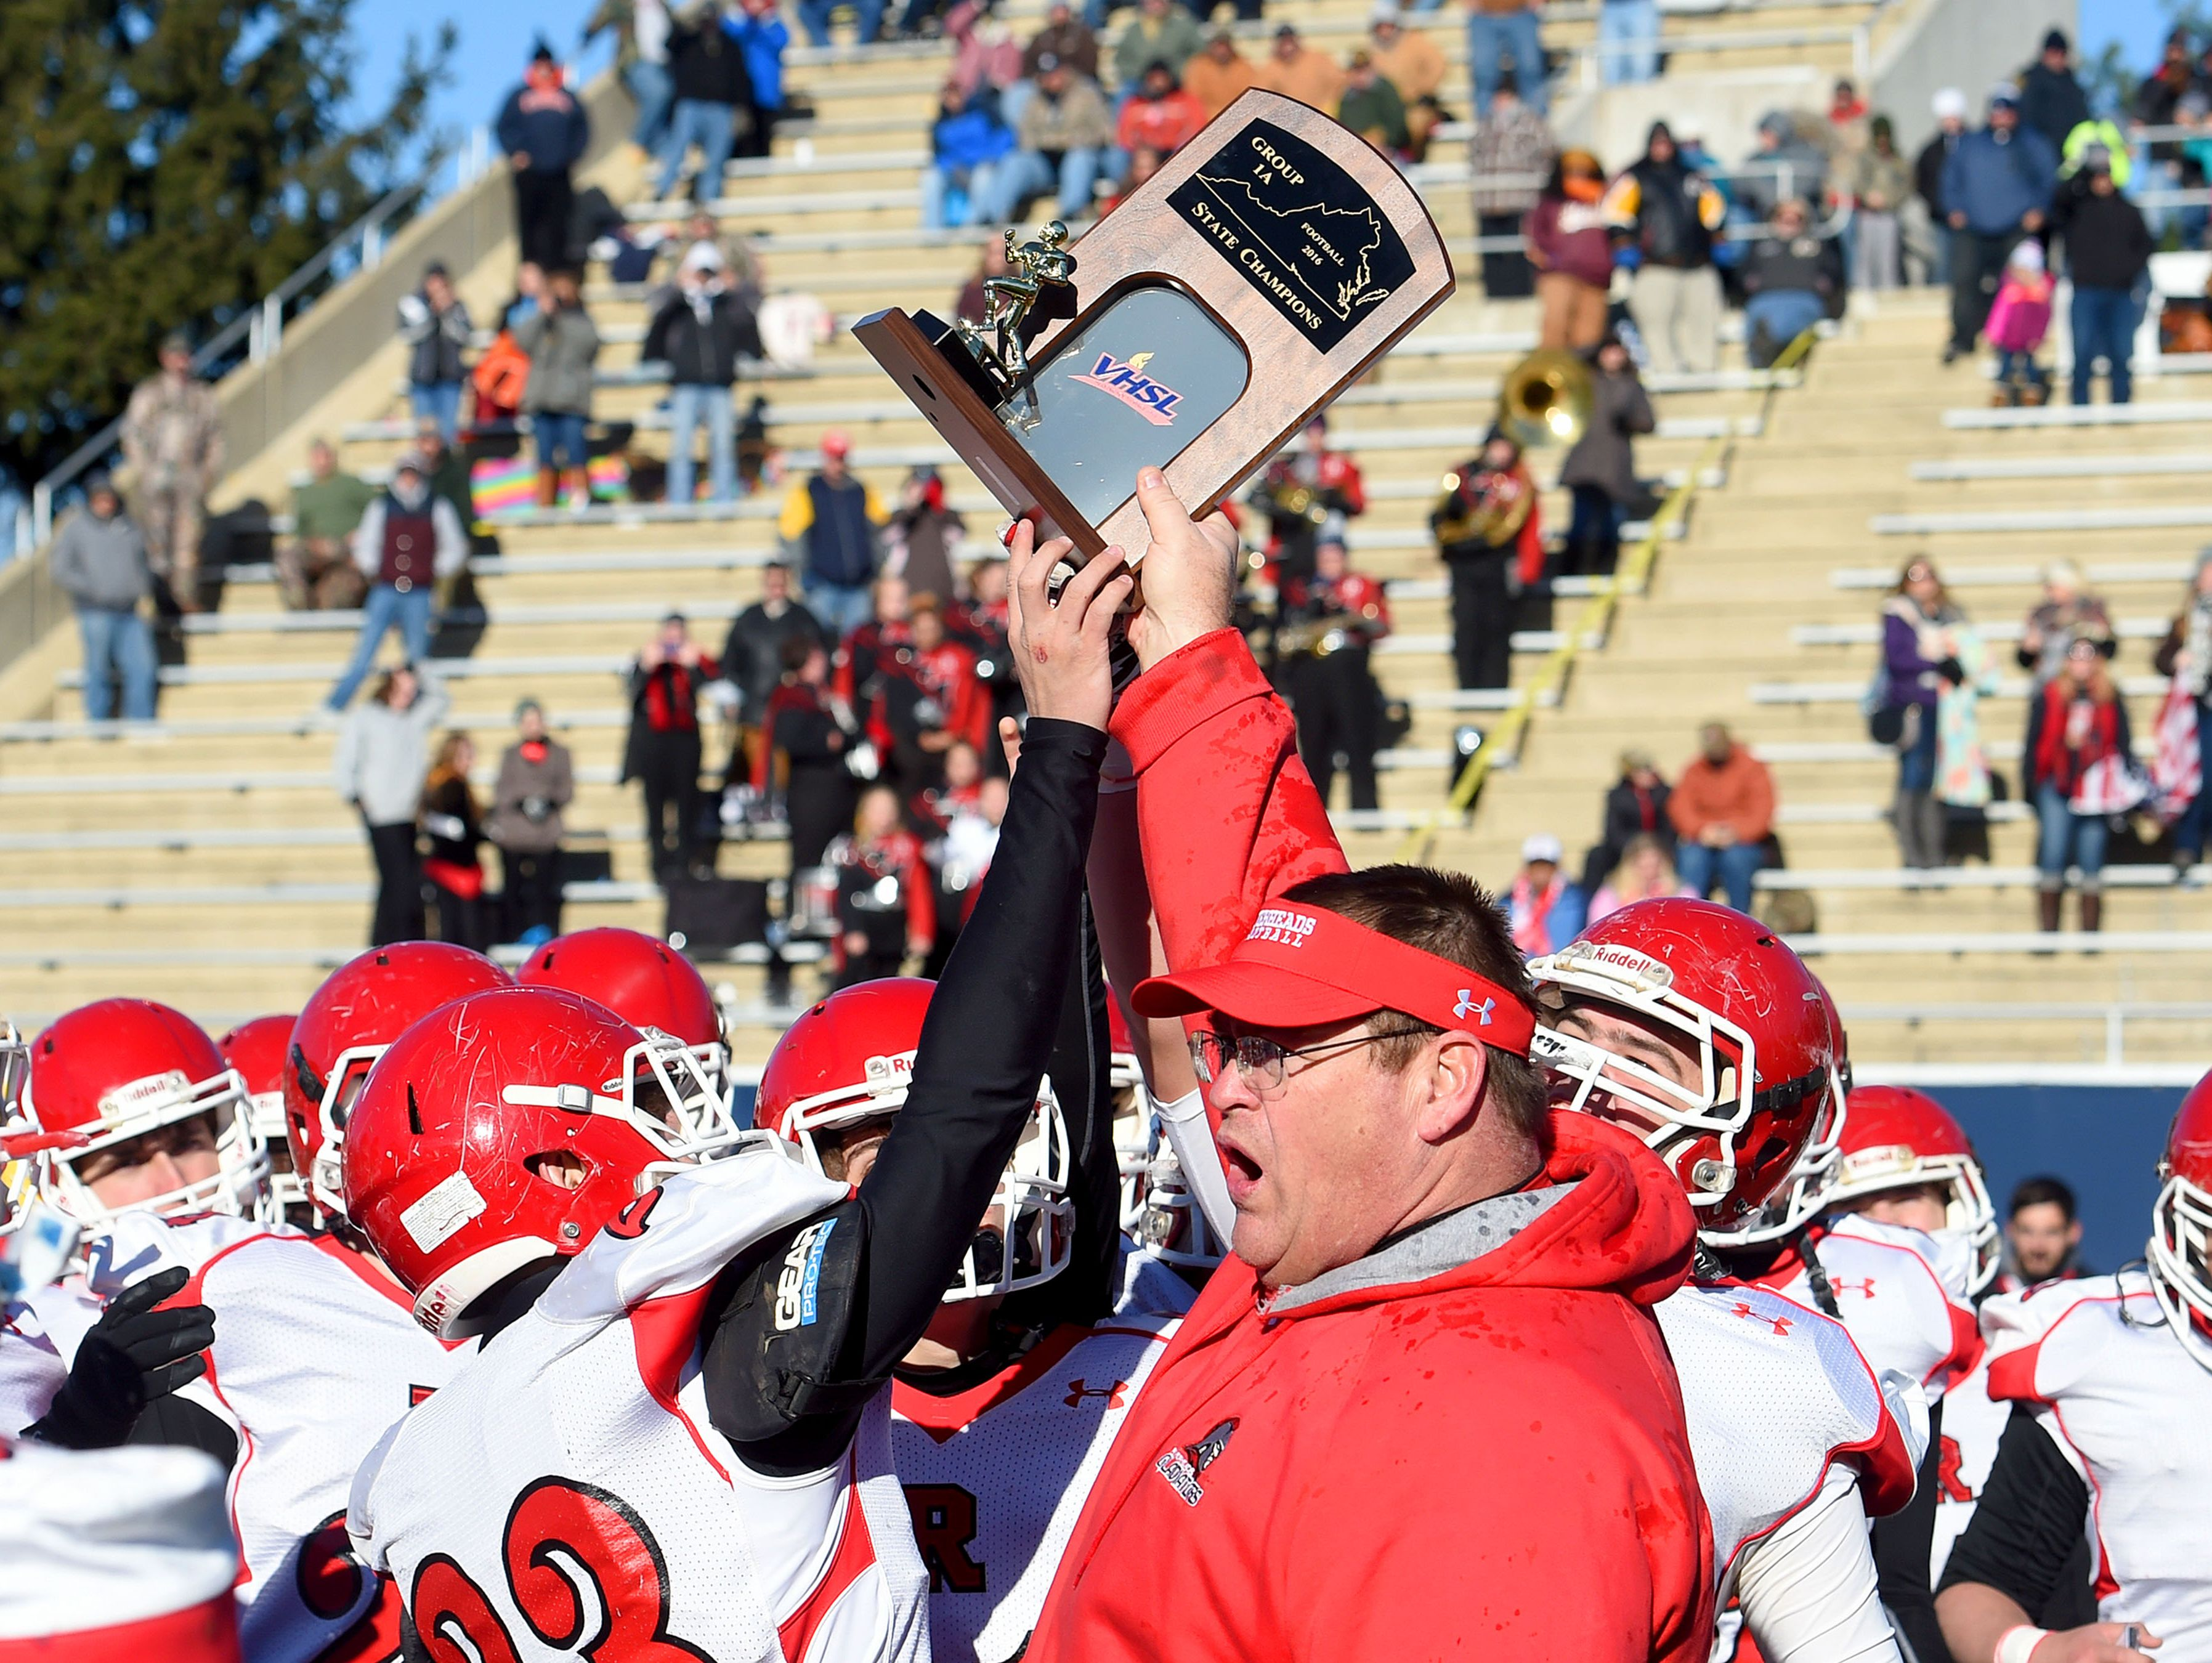 Riverheads' head coach Robert Casto holds high the Group 1A state championship trophy as he gives it to his players after defeating Sussex Central in a game played in Salem, 49-6.